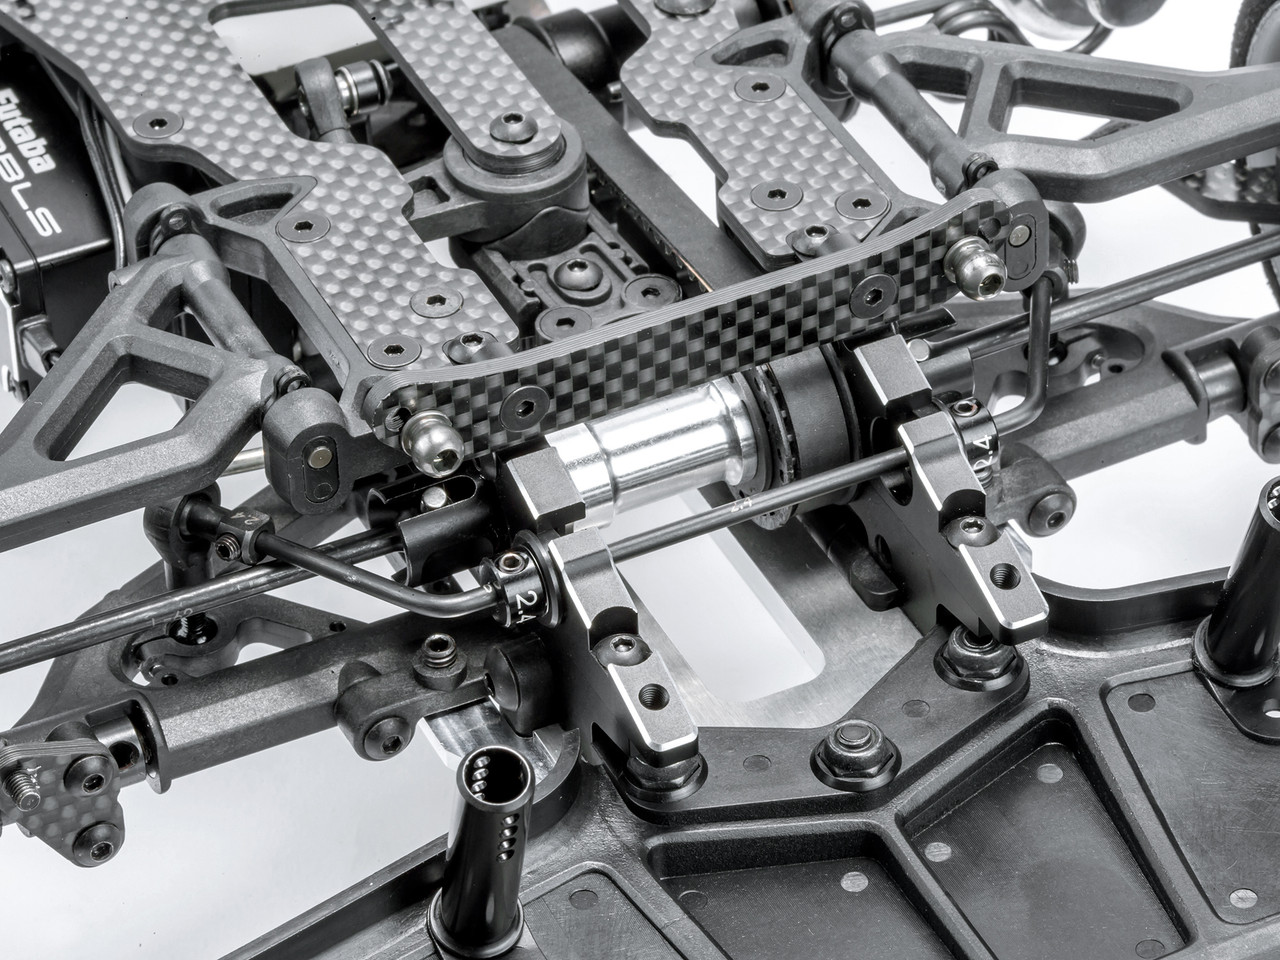 IF18-2 1/8 GP RACING CHASSIS KIT (Pre-Order Kit Only)